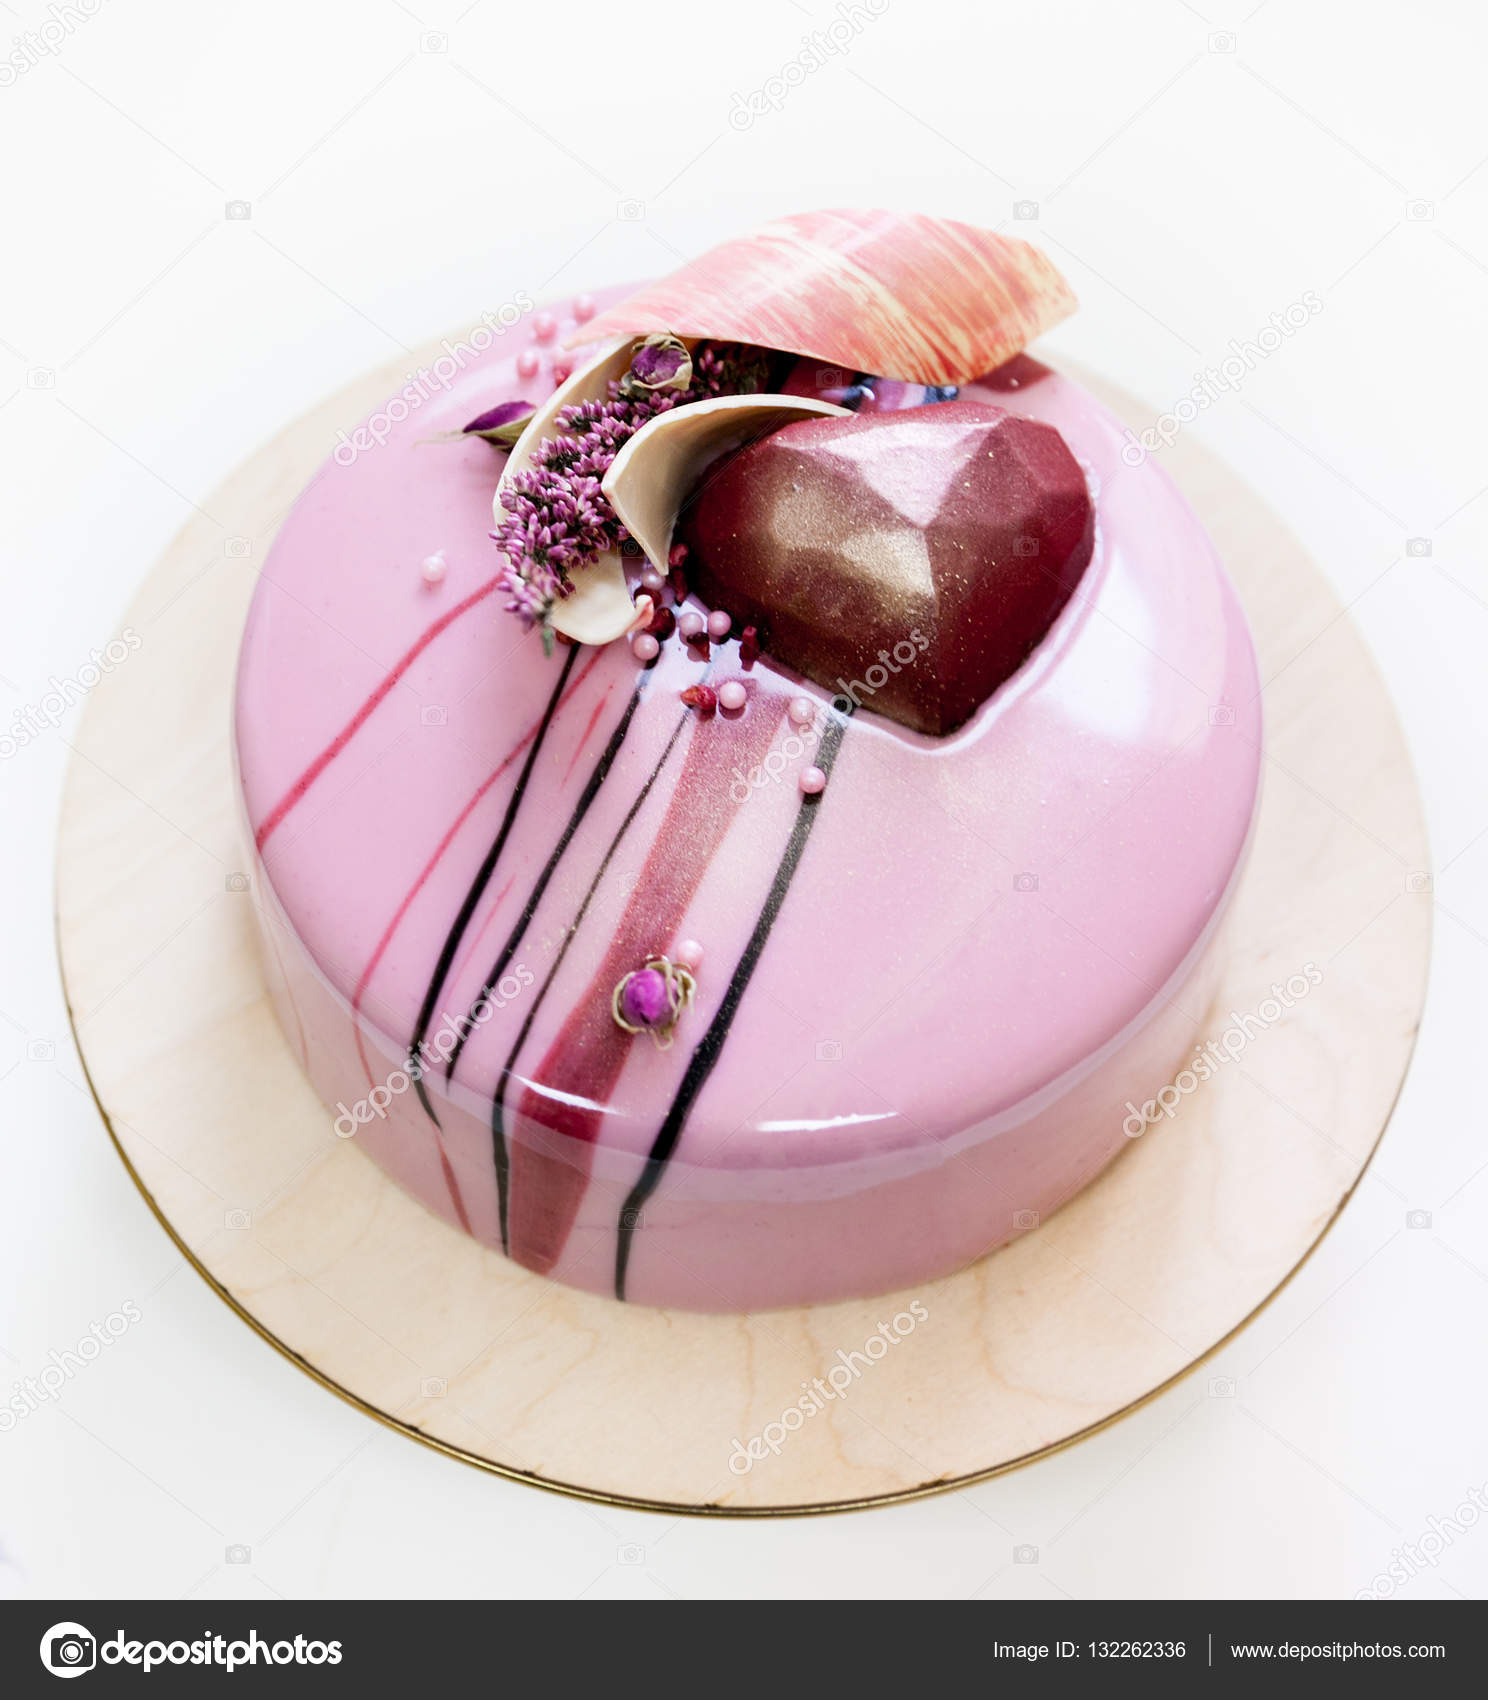 Minimalistic Pink Mousse Cake With Coated With Mirror Glaze On A